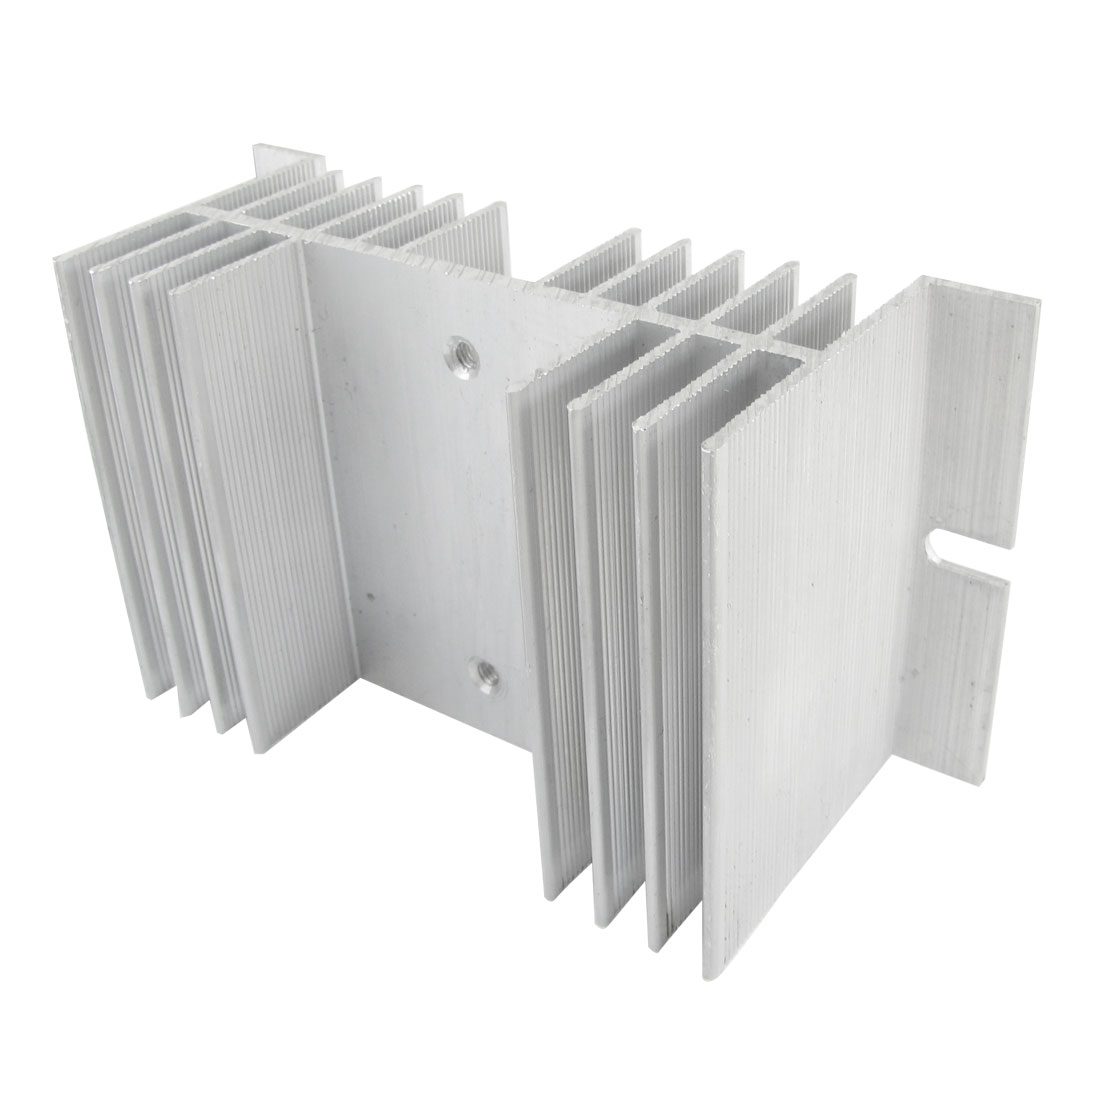 Aluminum Heat Sink Heatsink for Single Phase SSR Solid State Relay